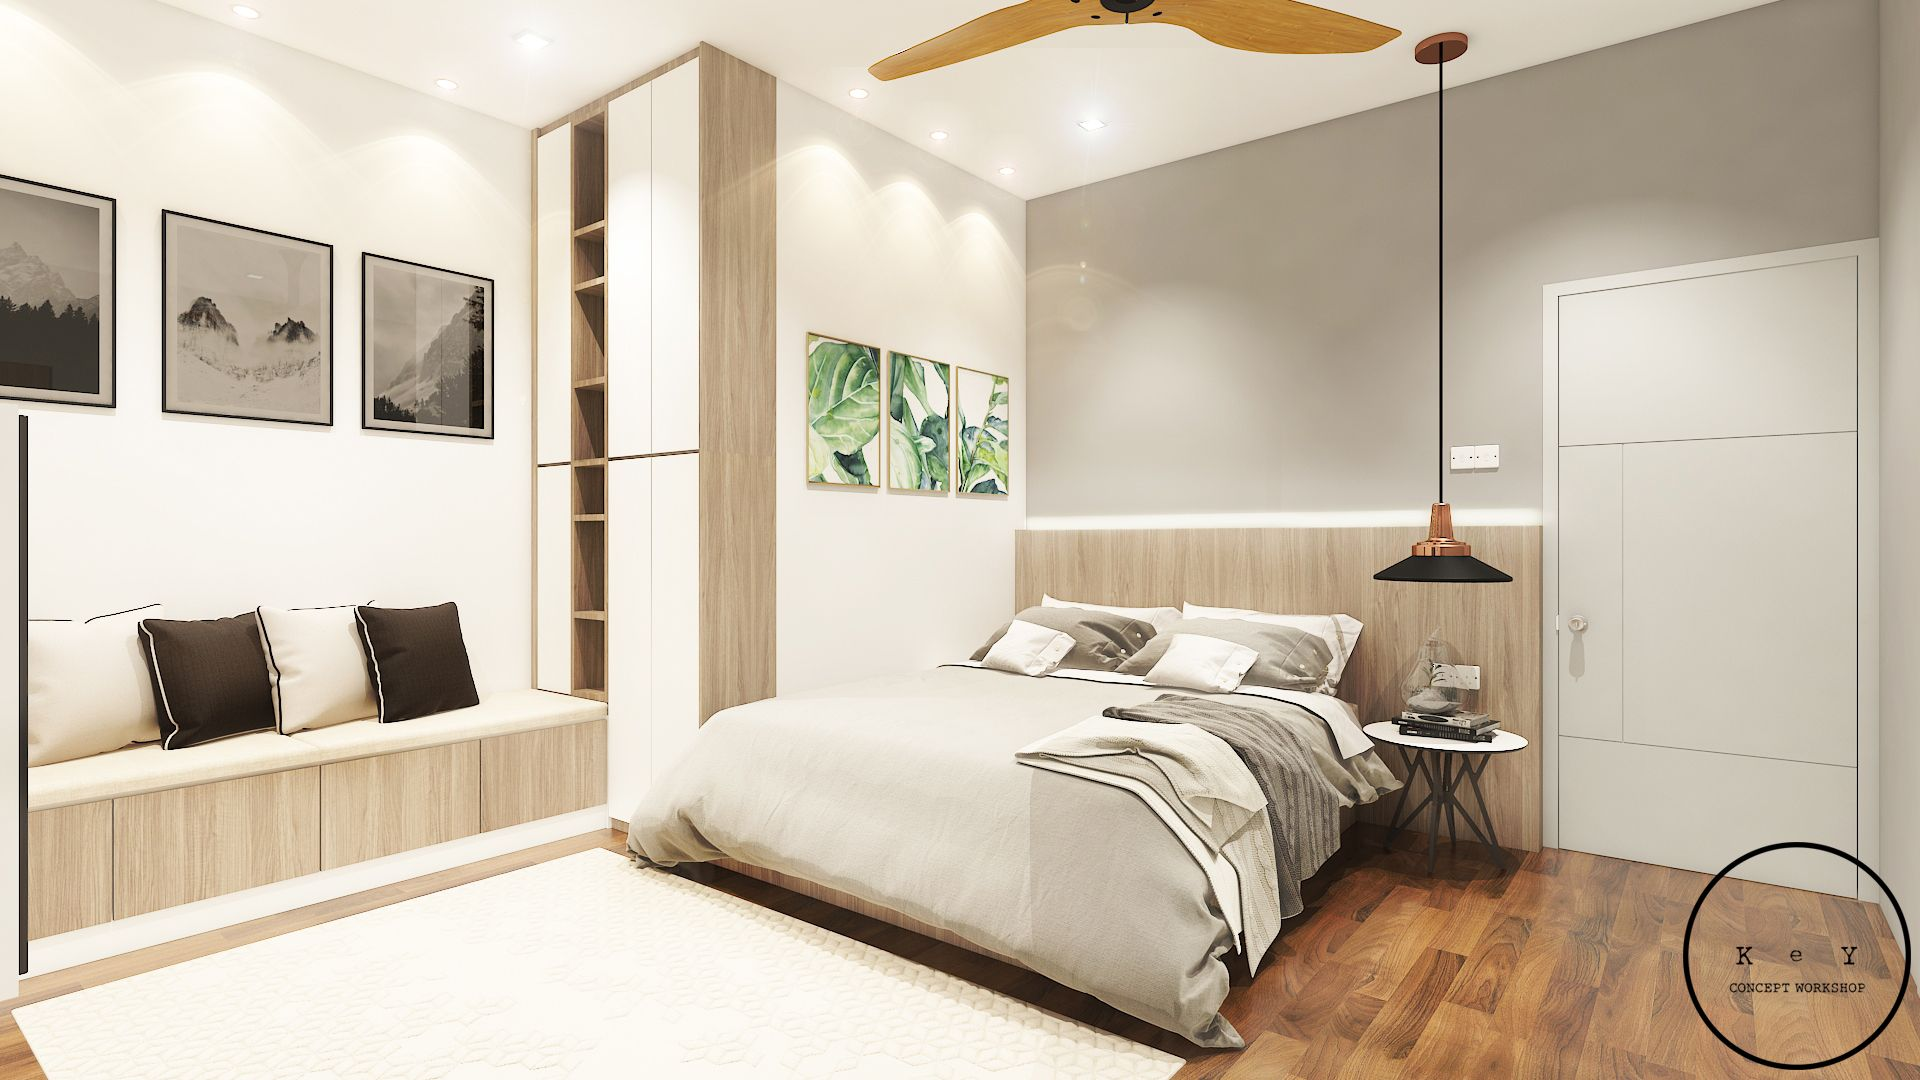 Looking For A Soft Color Scheme And Simple Lighting Design For Your Master Bedroom Introduce You A Minimalist Style Home Renovation Interior Design Home